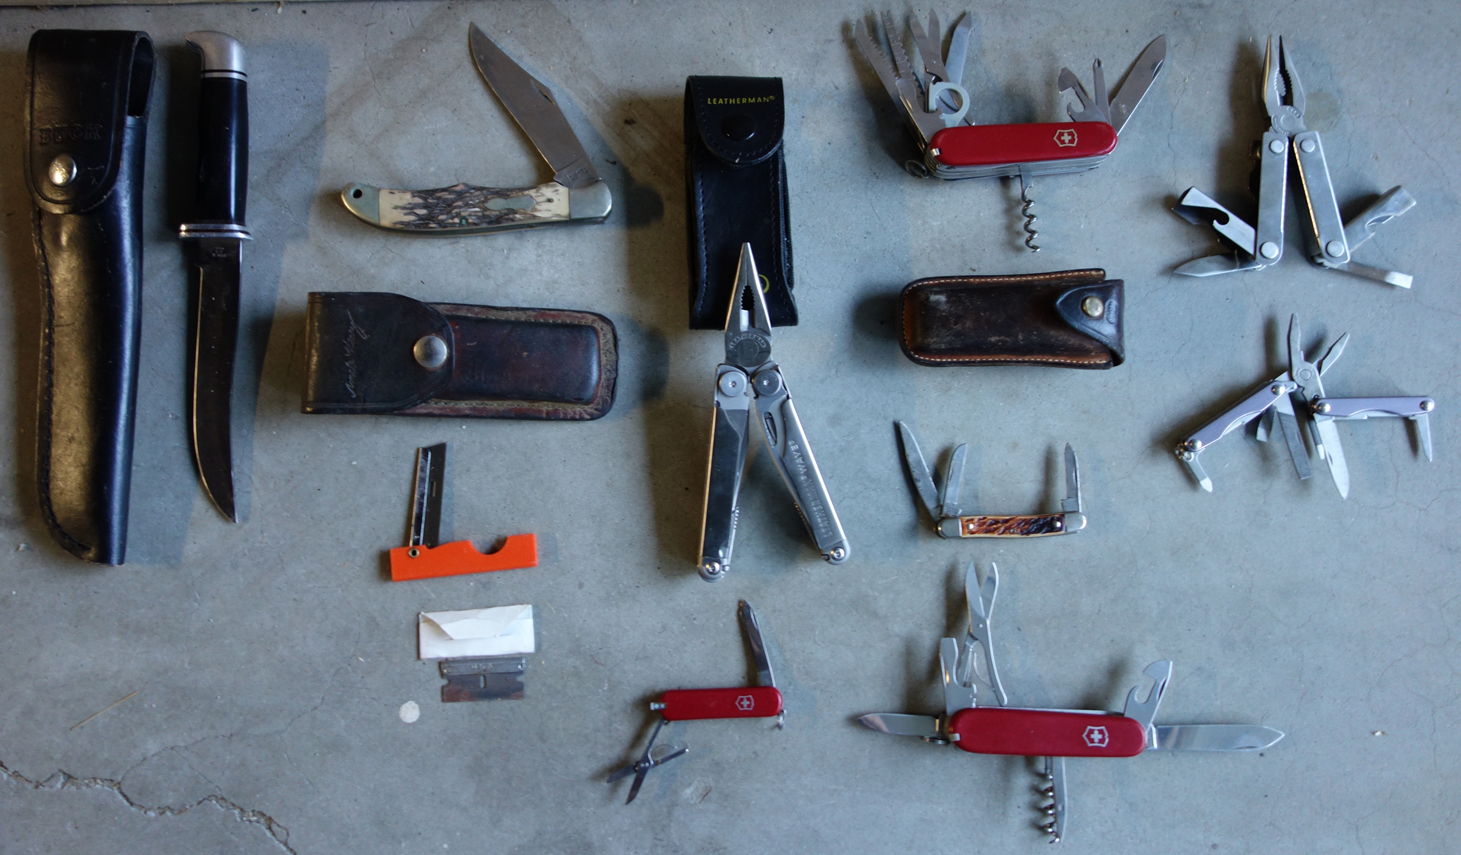 Knife collection smaller